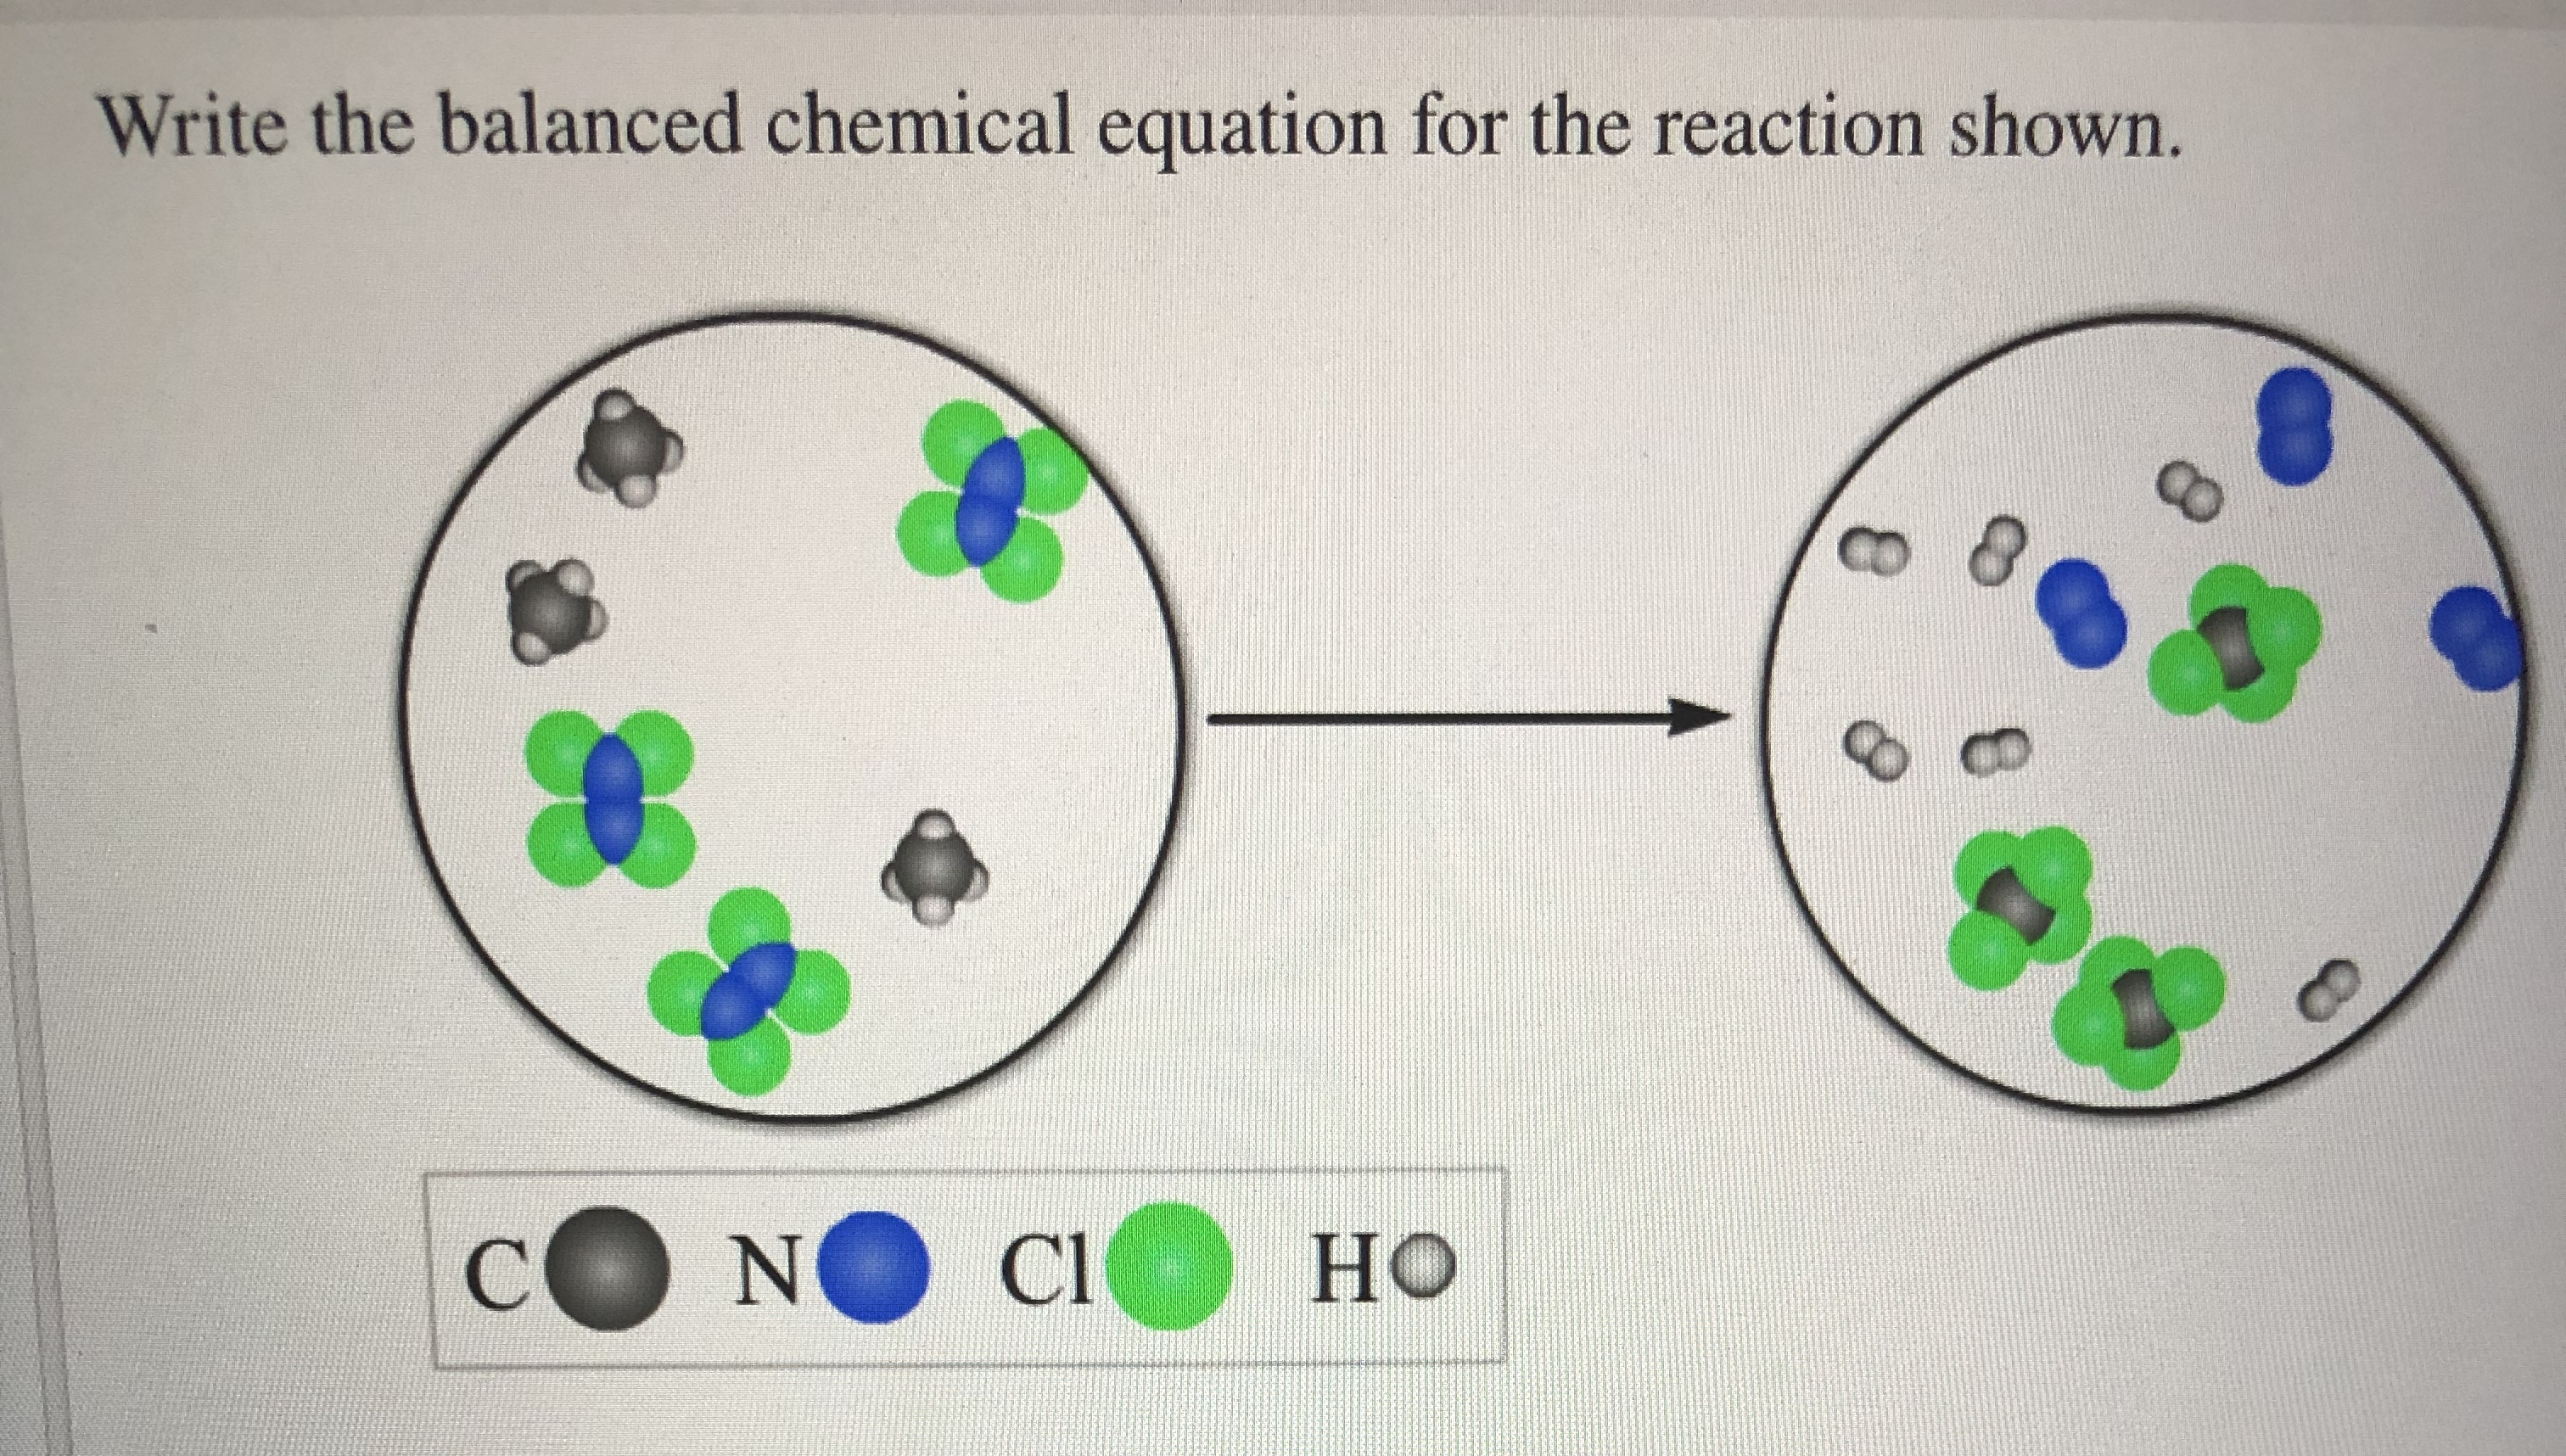 Write the balanced chemical equation for the reaction shown. 8 CO HO CO NO CI